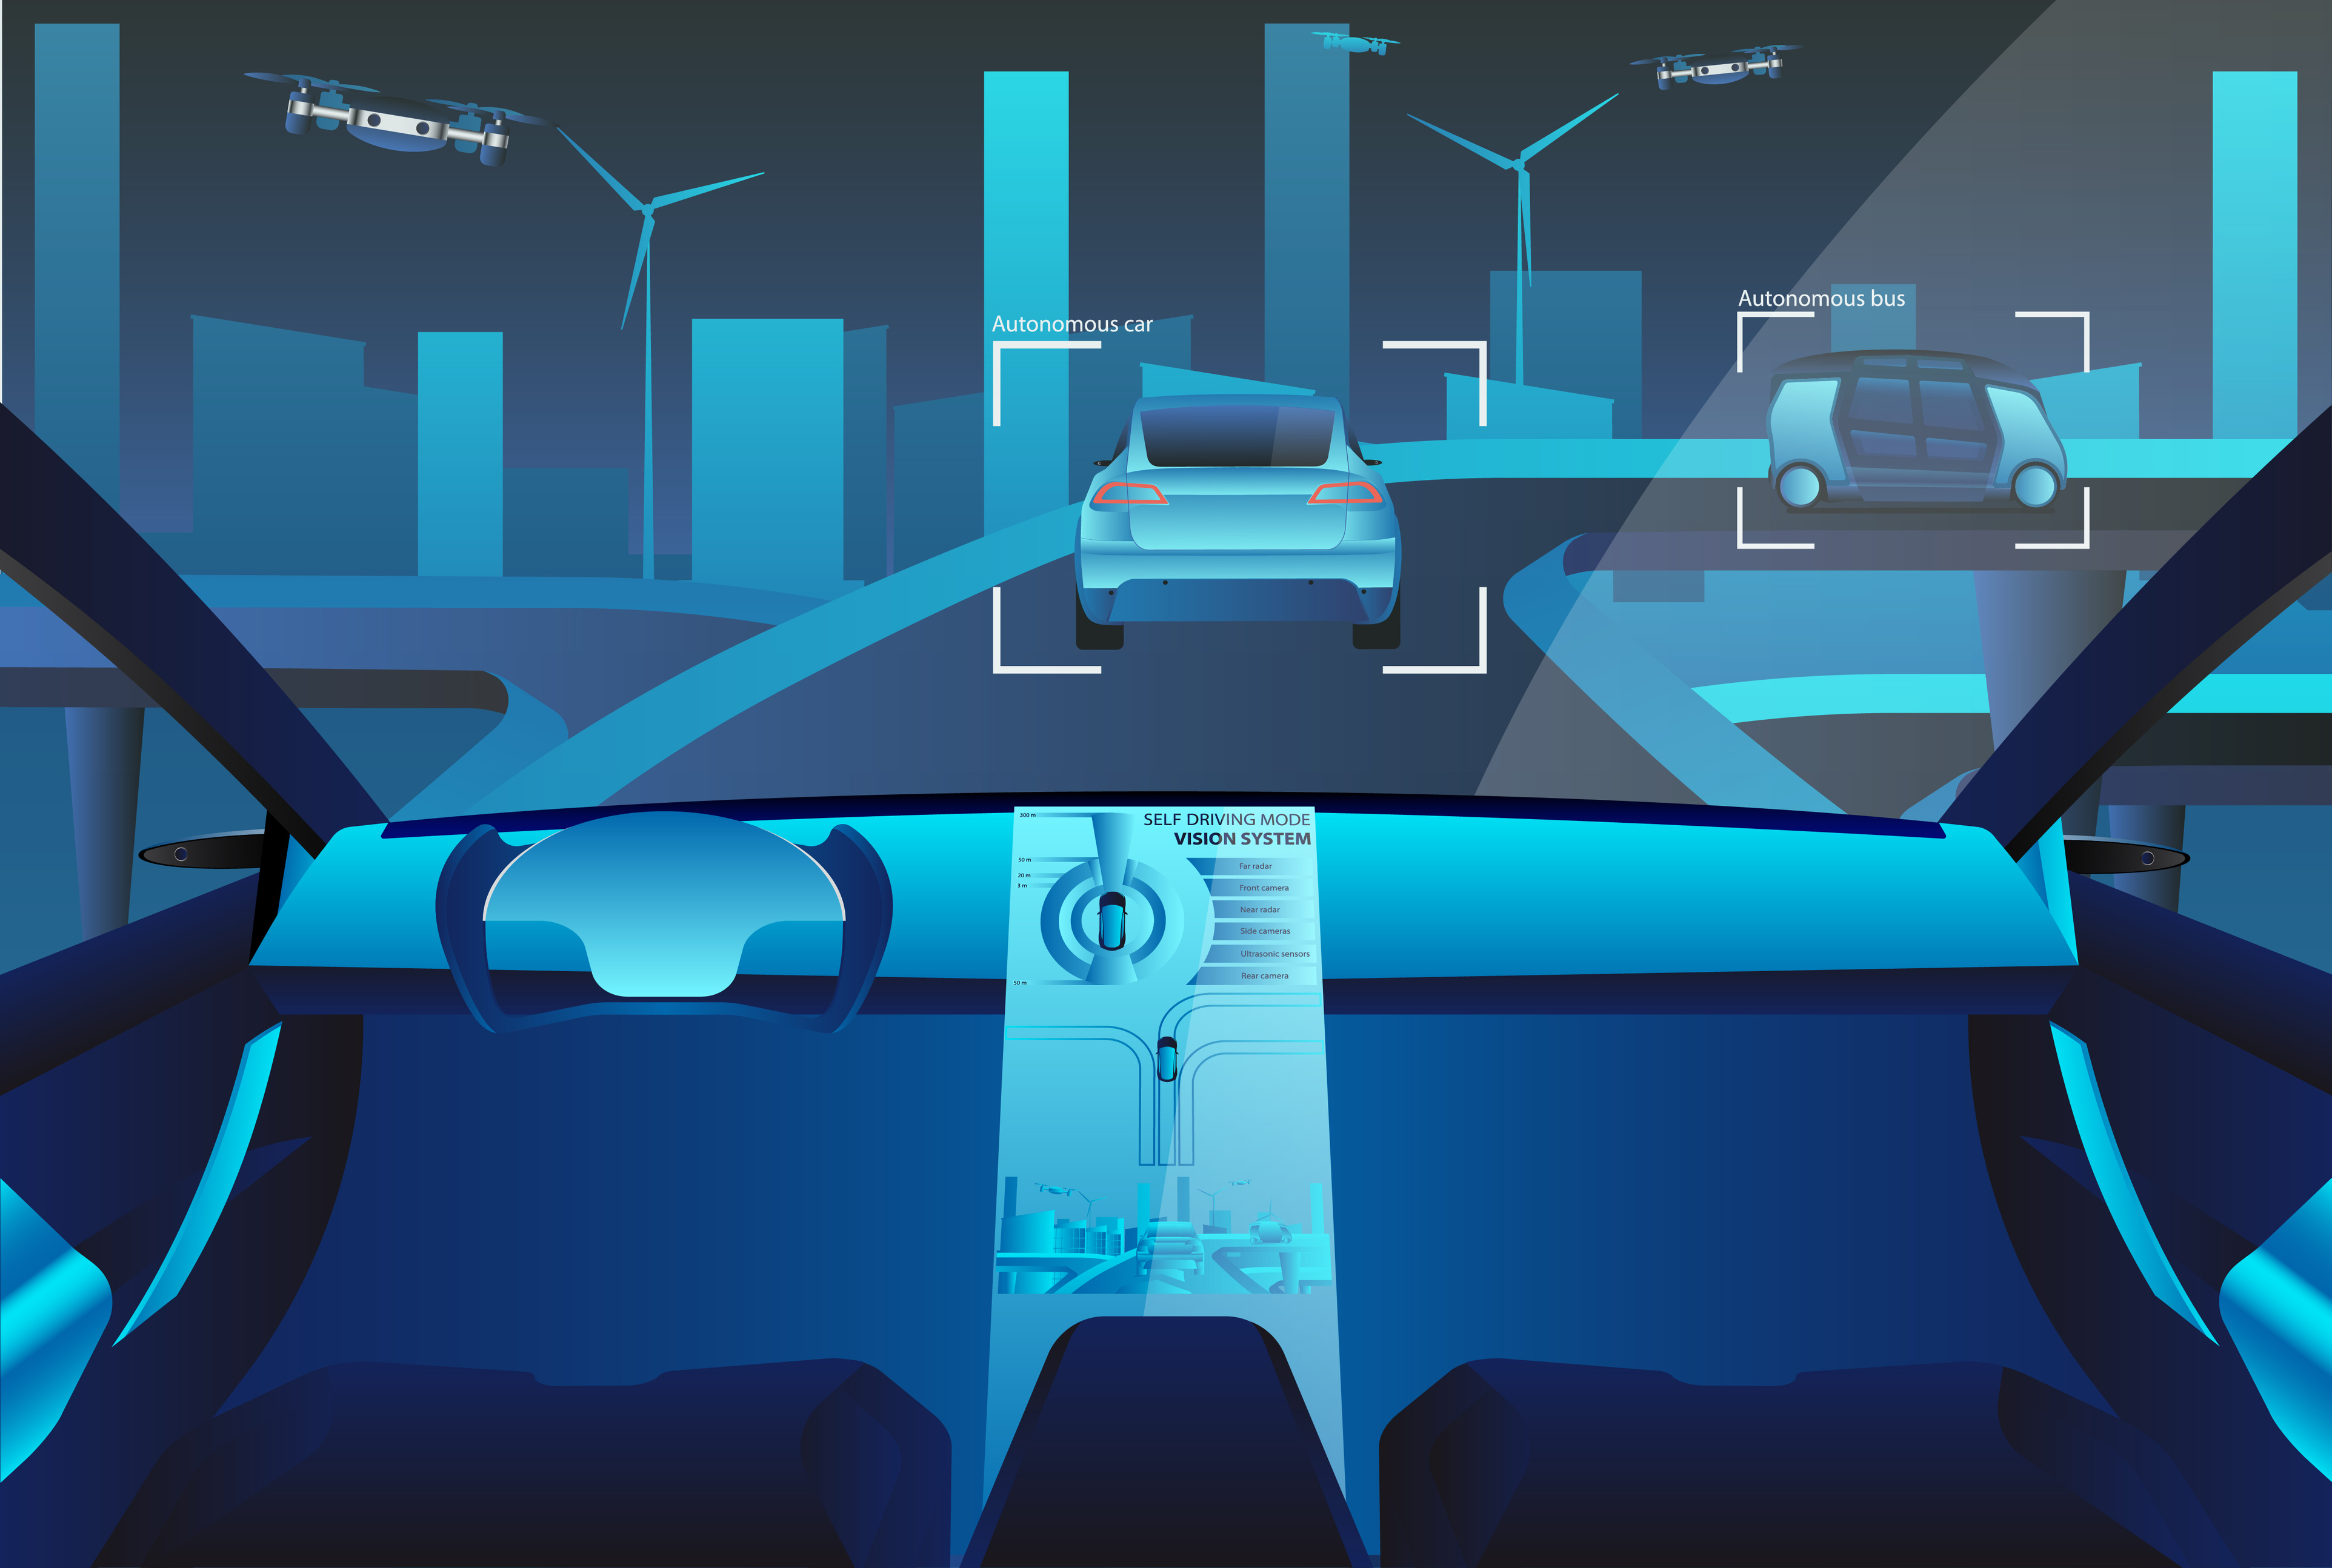 Beyond Speculation 2.0: Automated Vehicles and Public Policy